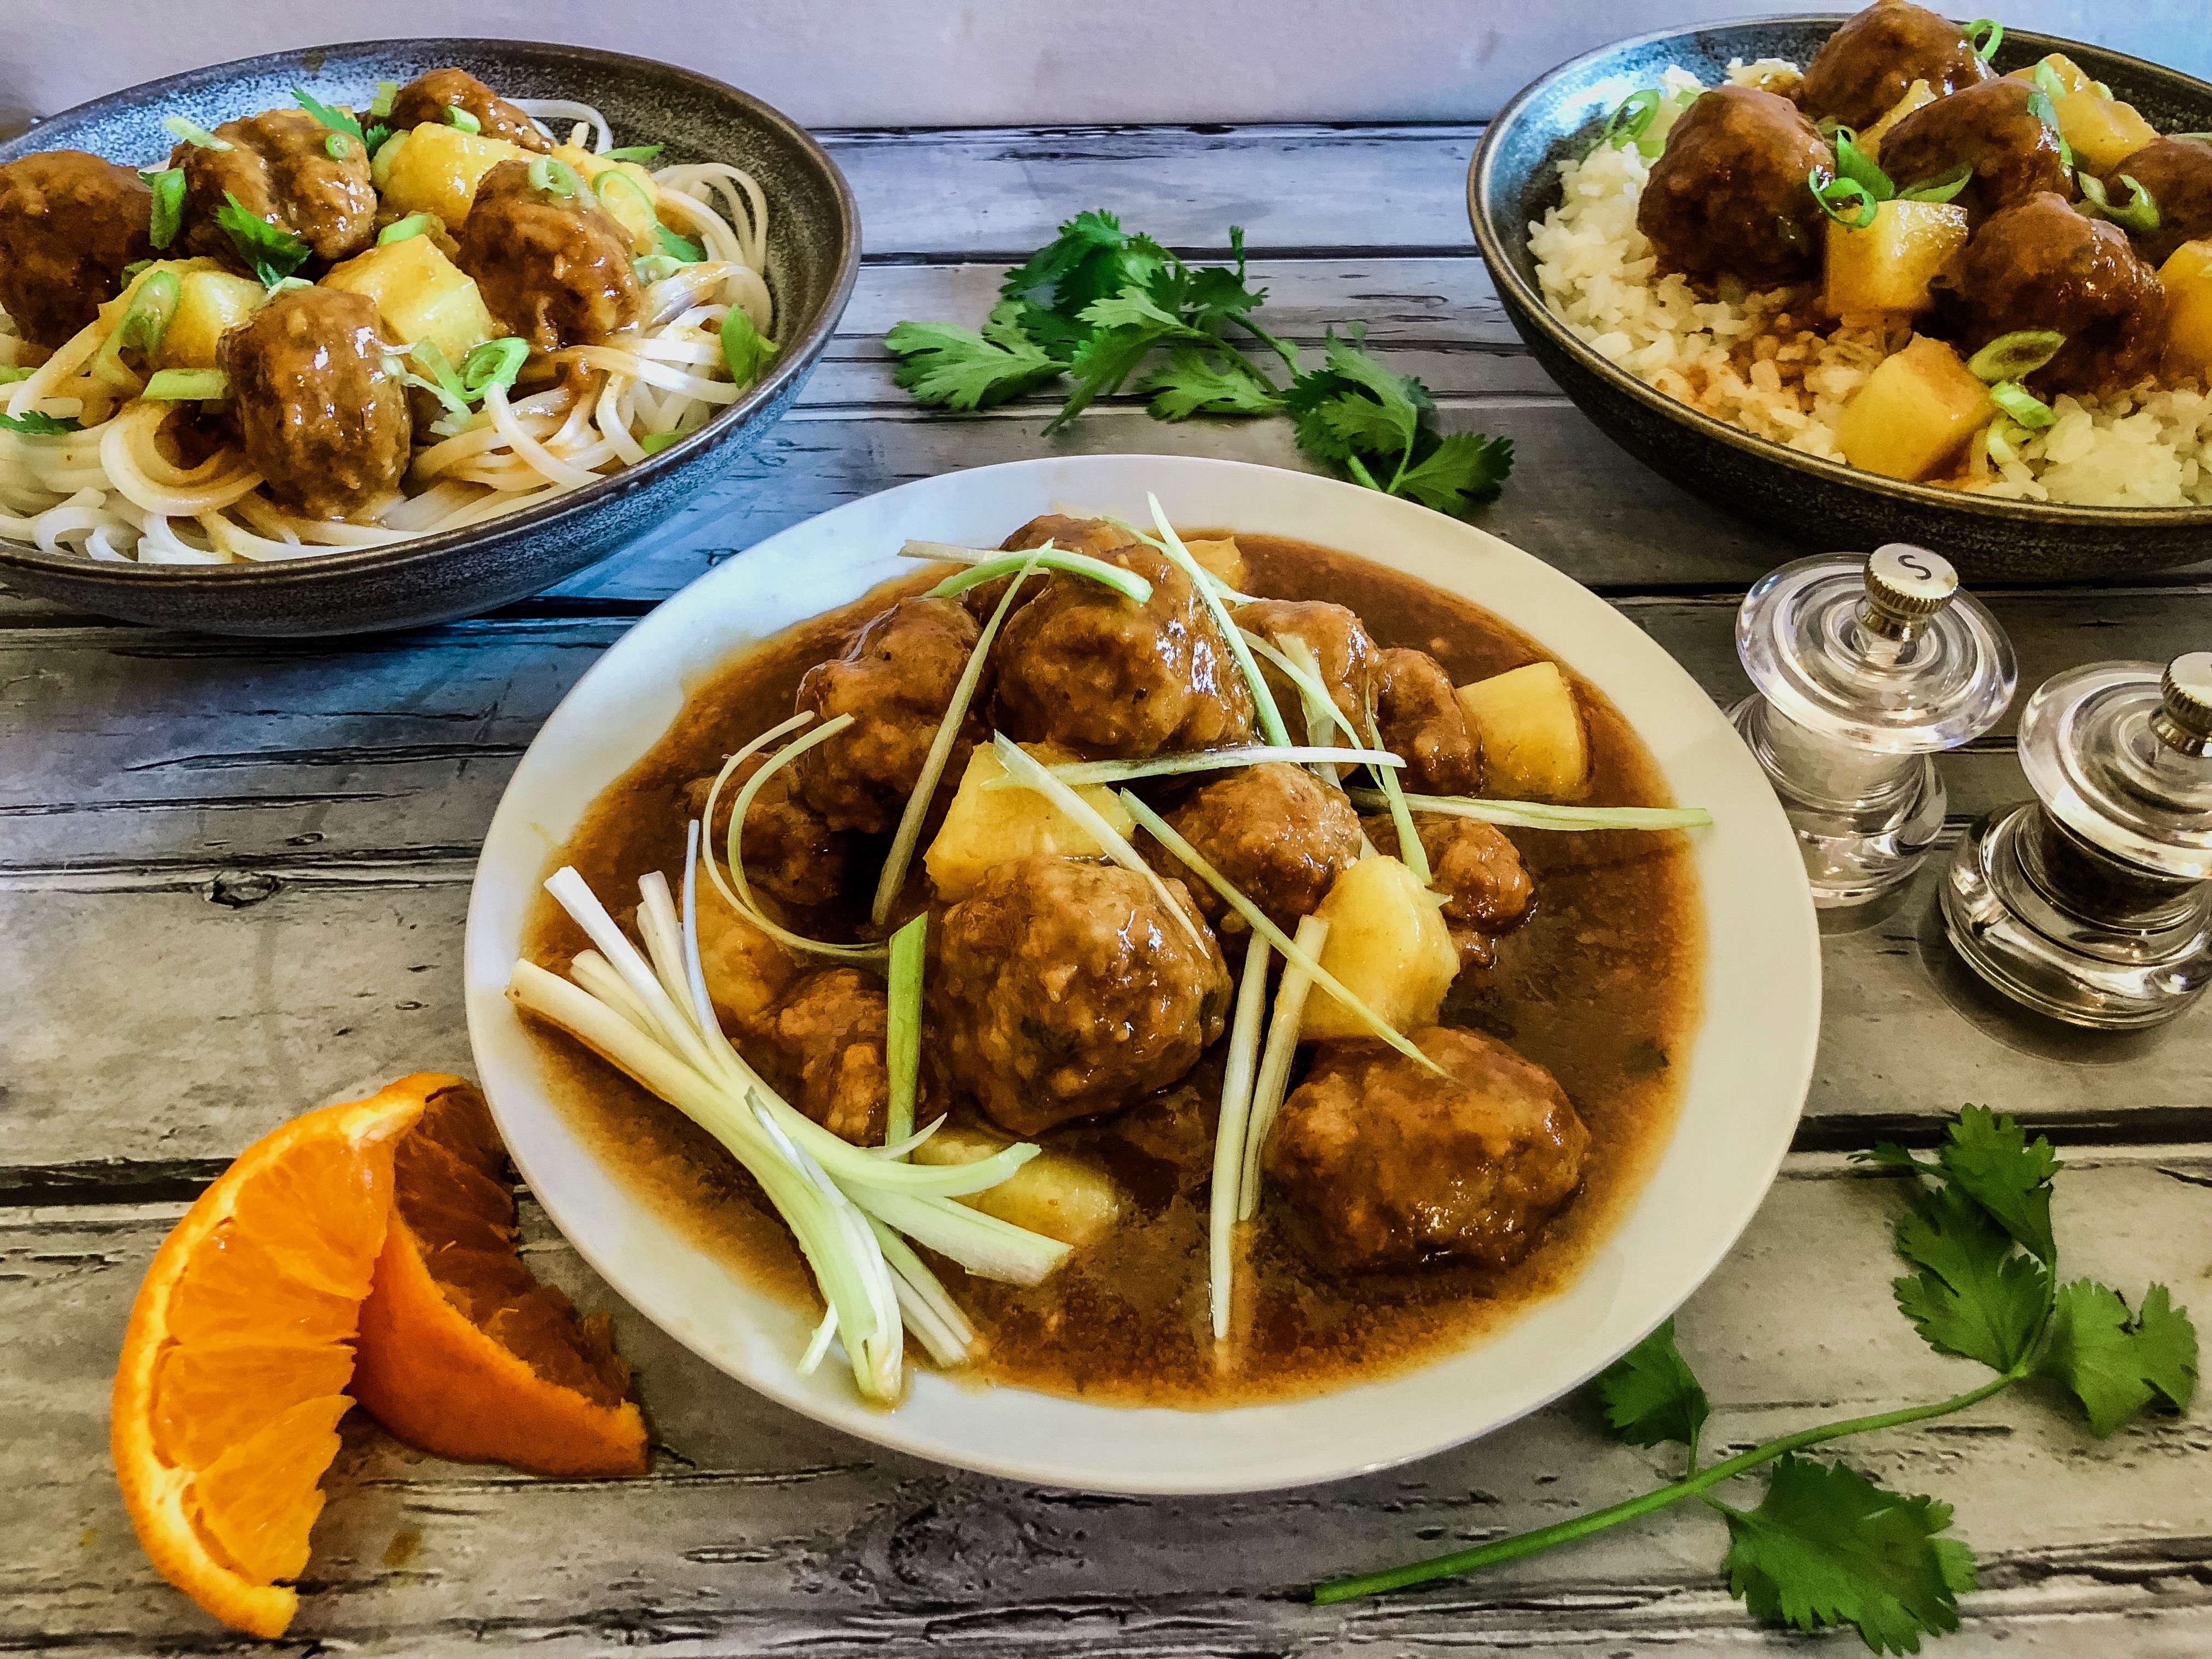 bowls of sweet and sour meatballs with noodles and rice